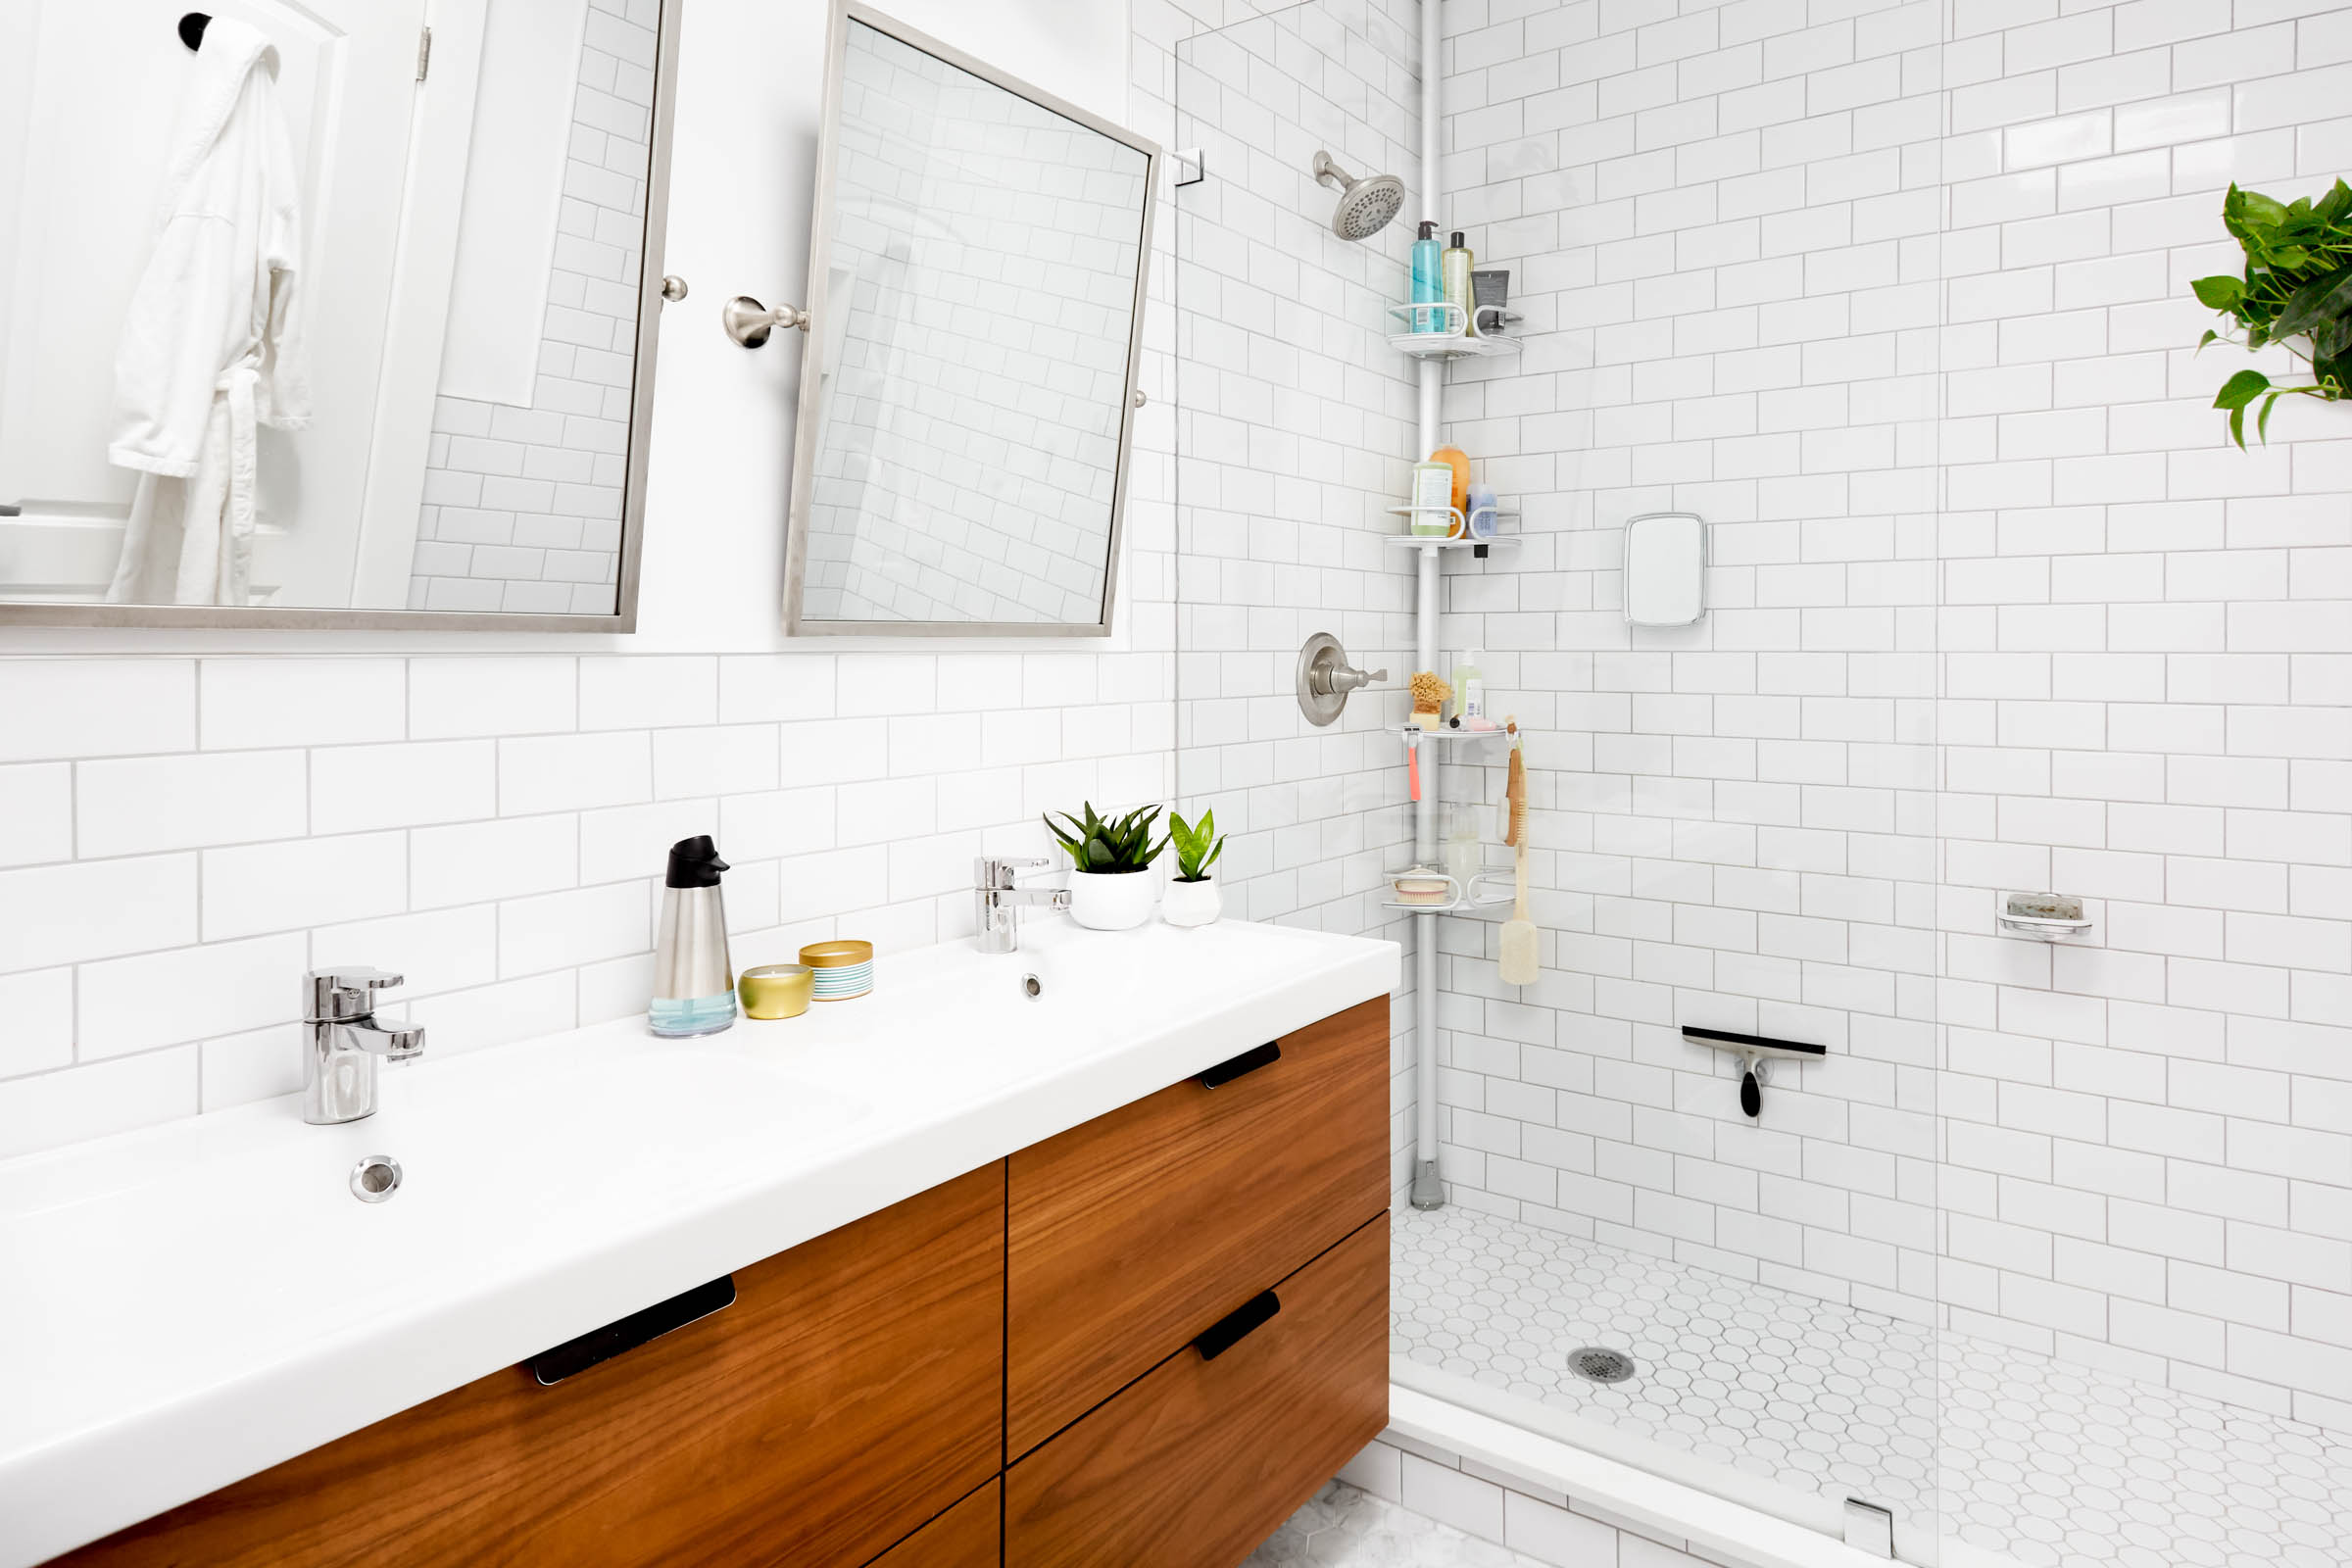 Bathroom | Apartment Therapy